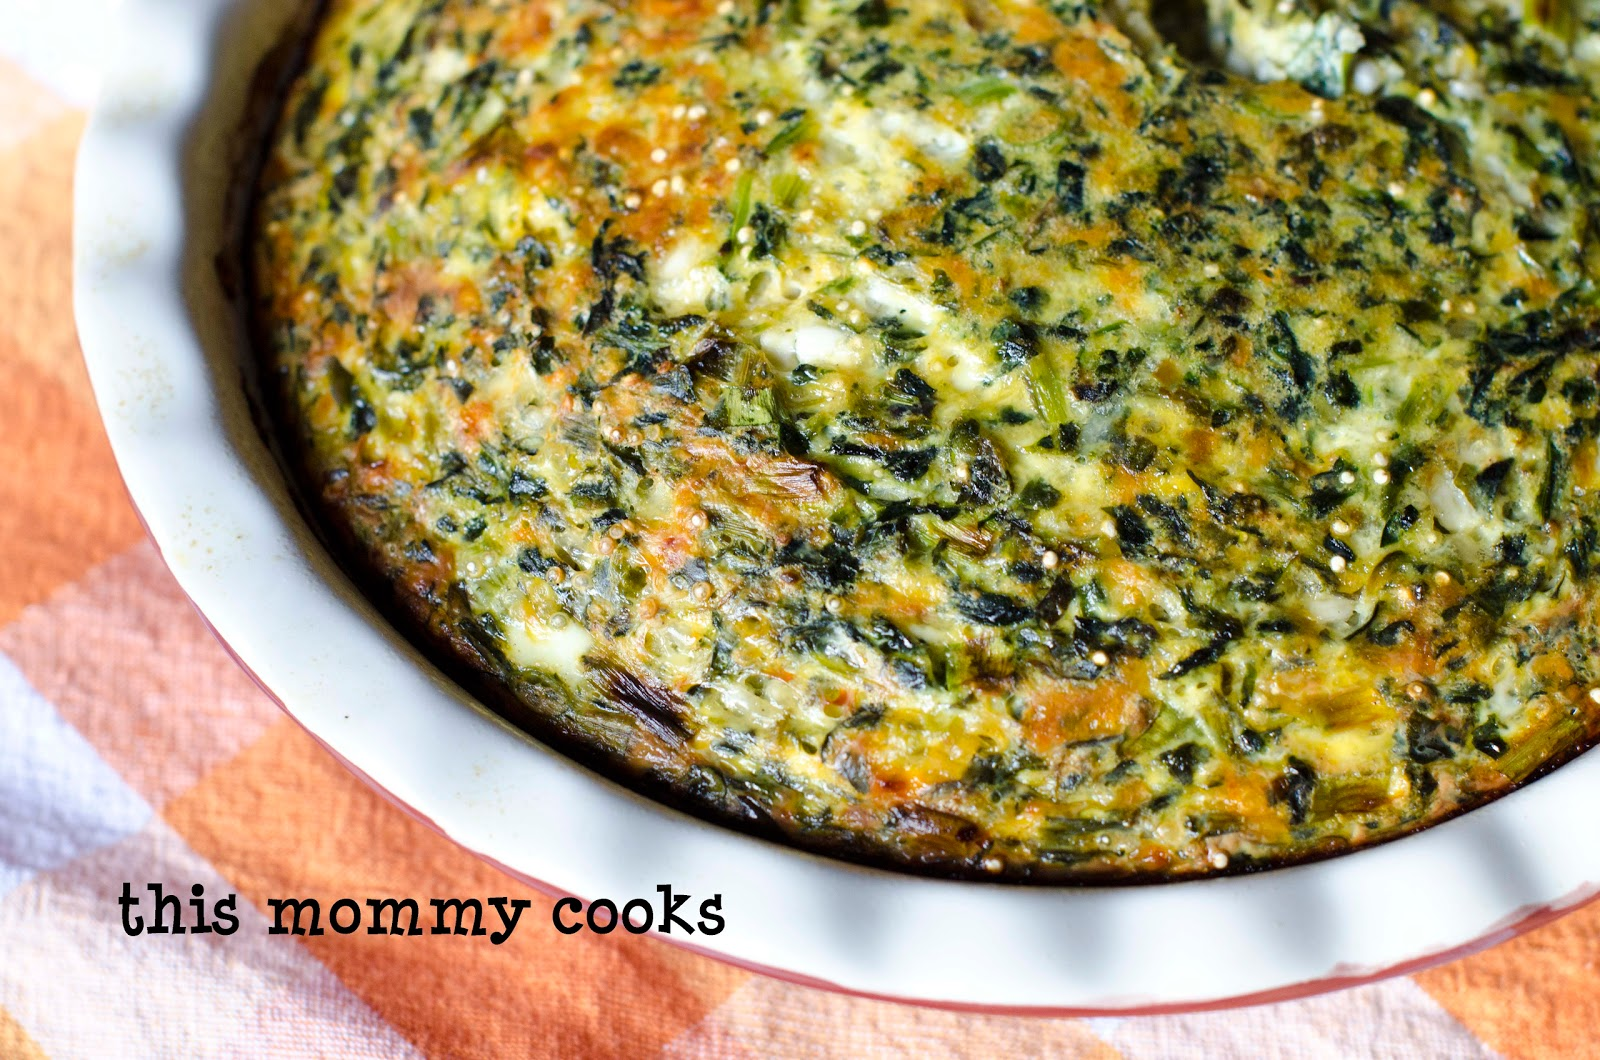 ... Mommy Cooks: Quinoa, Spinach, Cheese, and Egg Casserole {Vegetarian